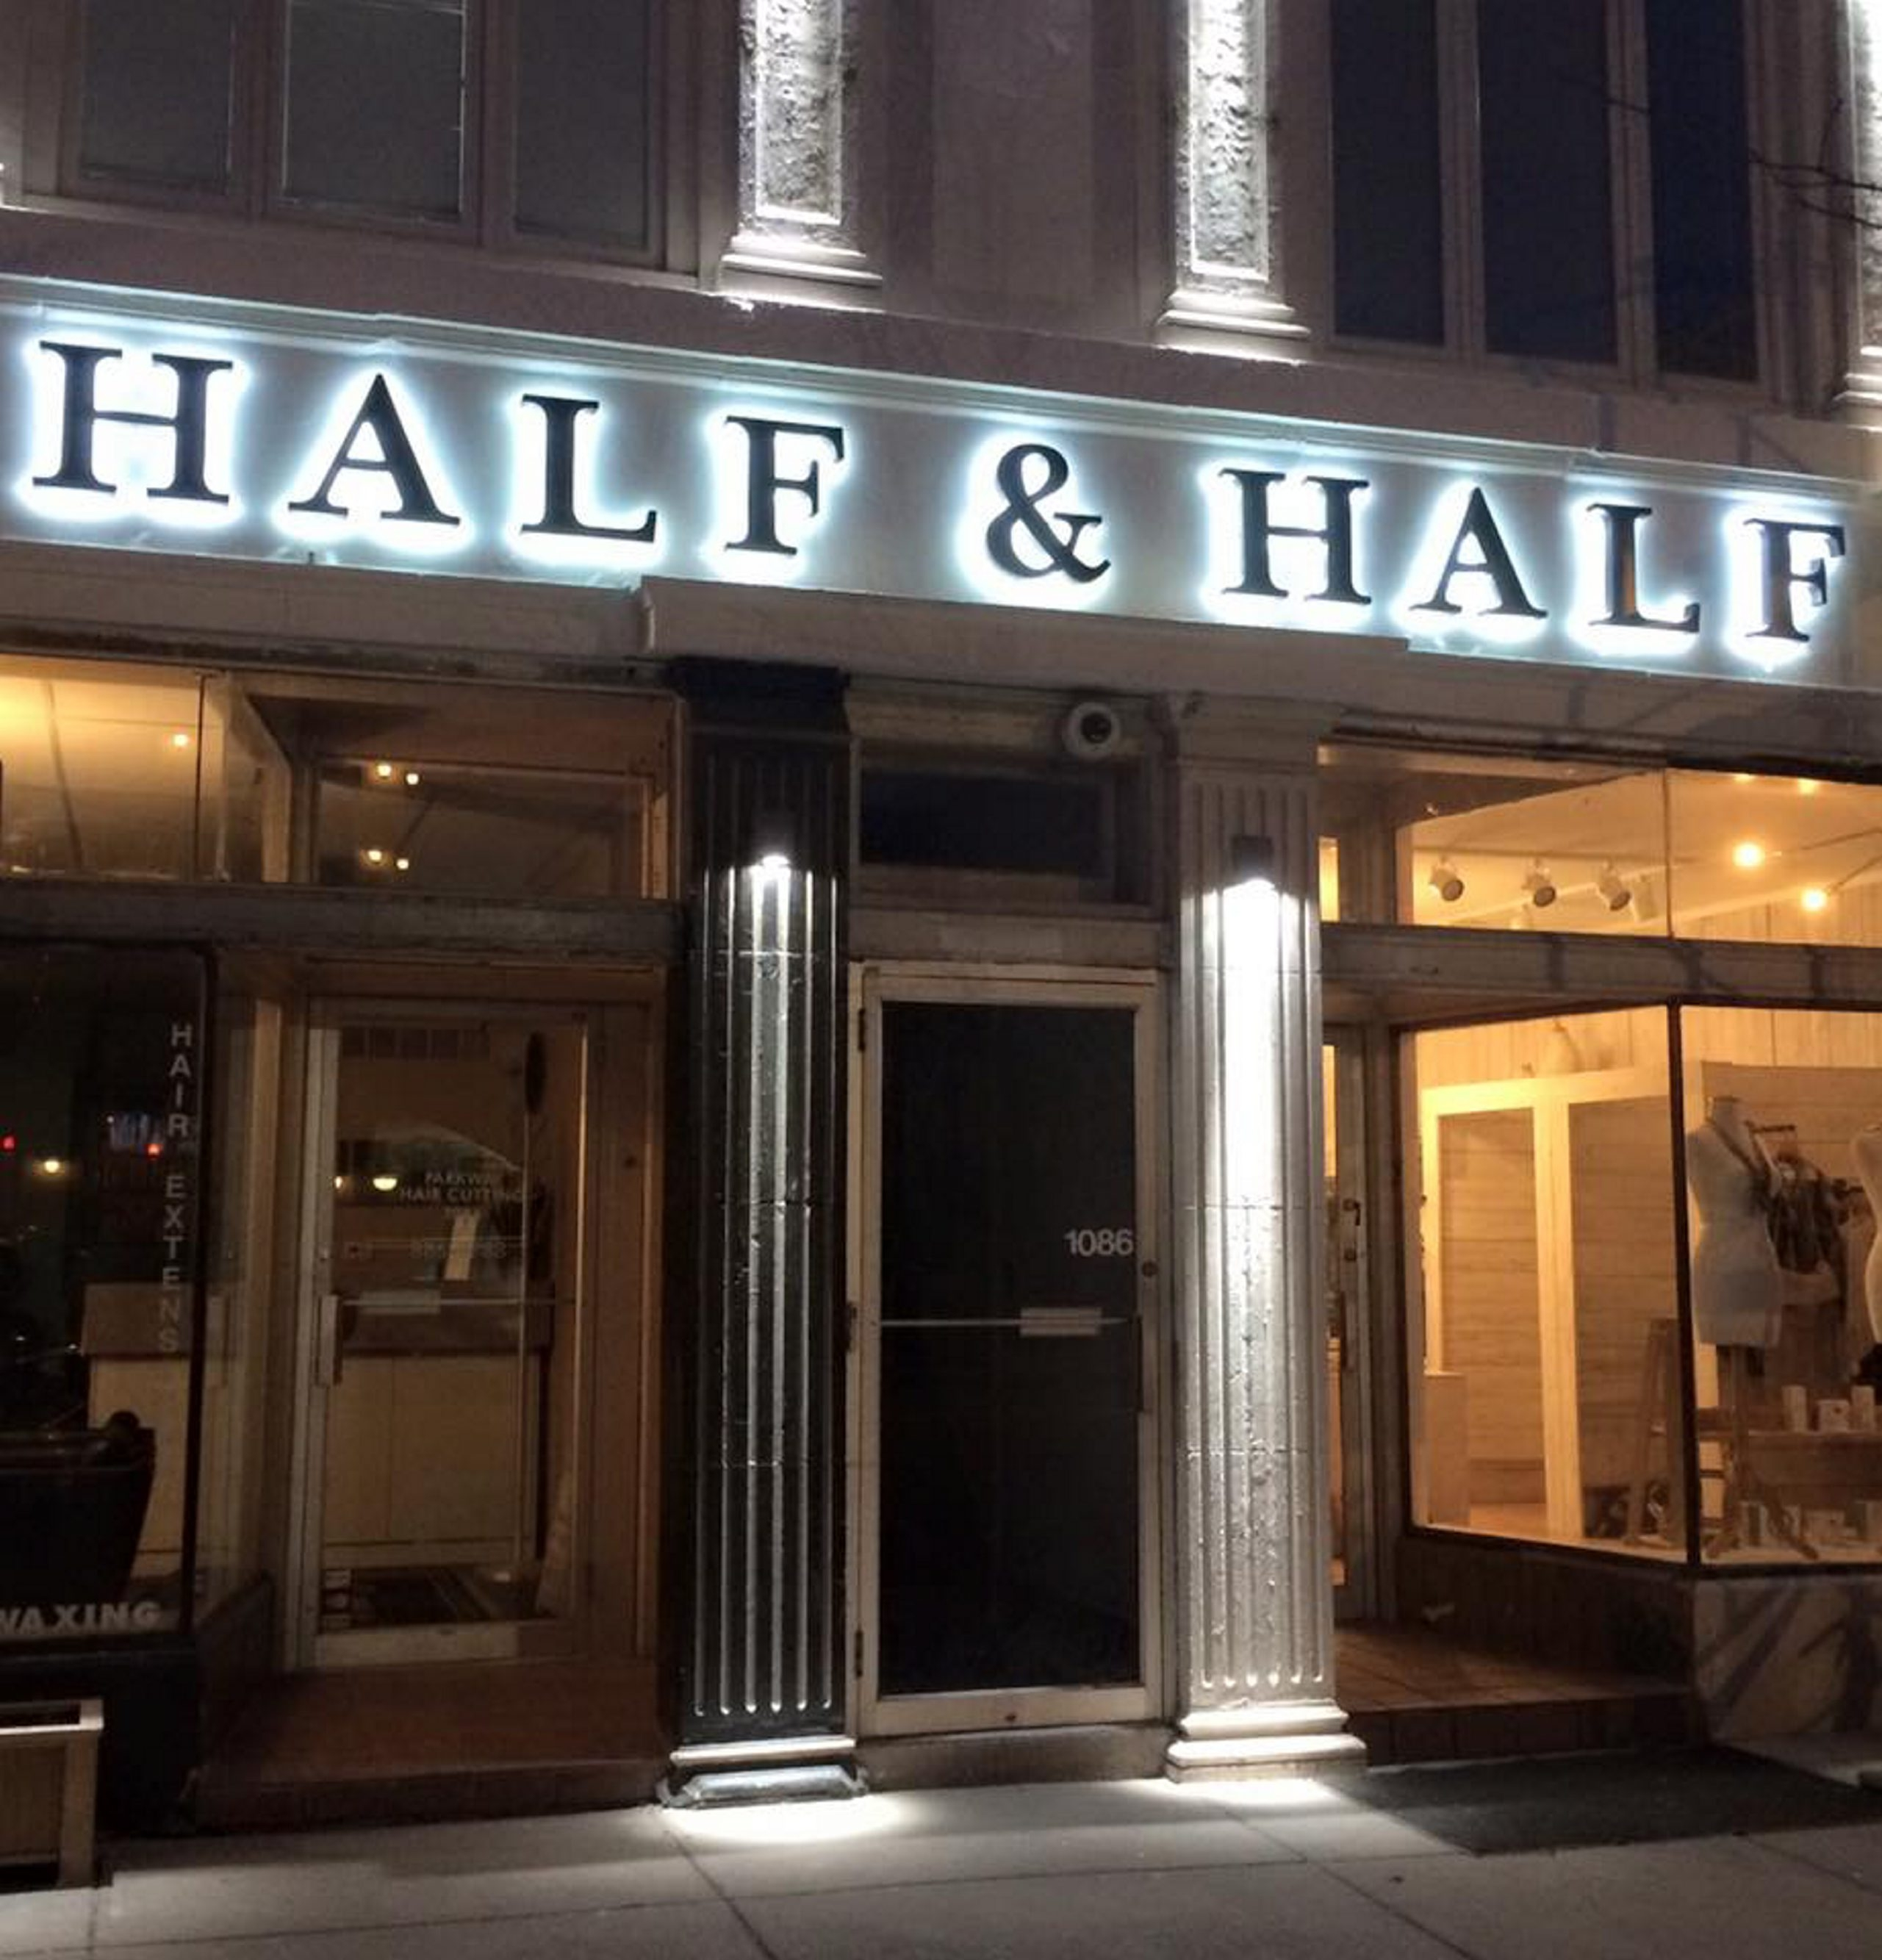 Half & Half, a longstanding store on Elmwood Avenue in Buffalo, will reopen under new ownership on Saturday.